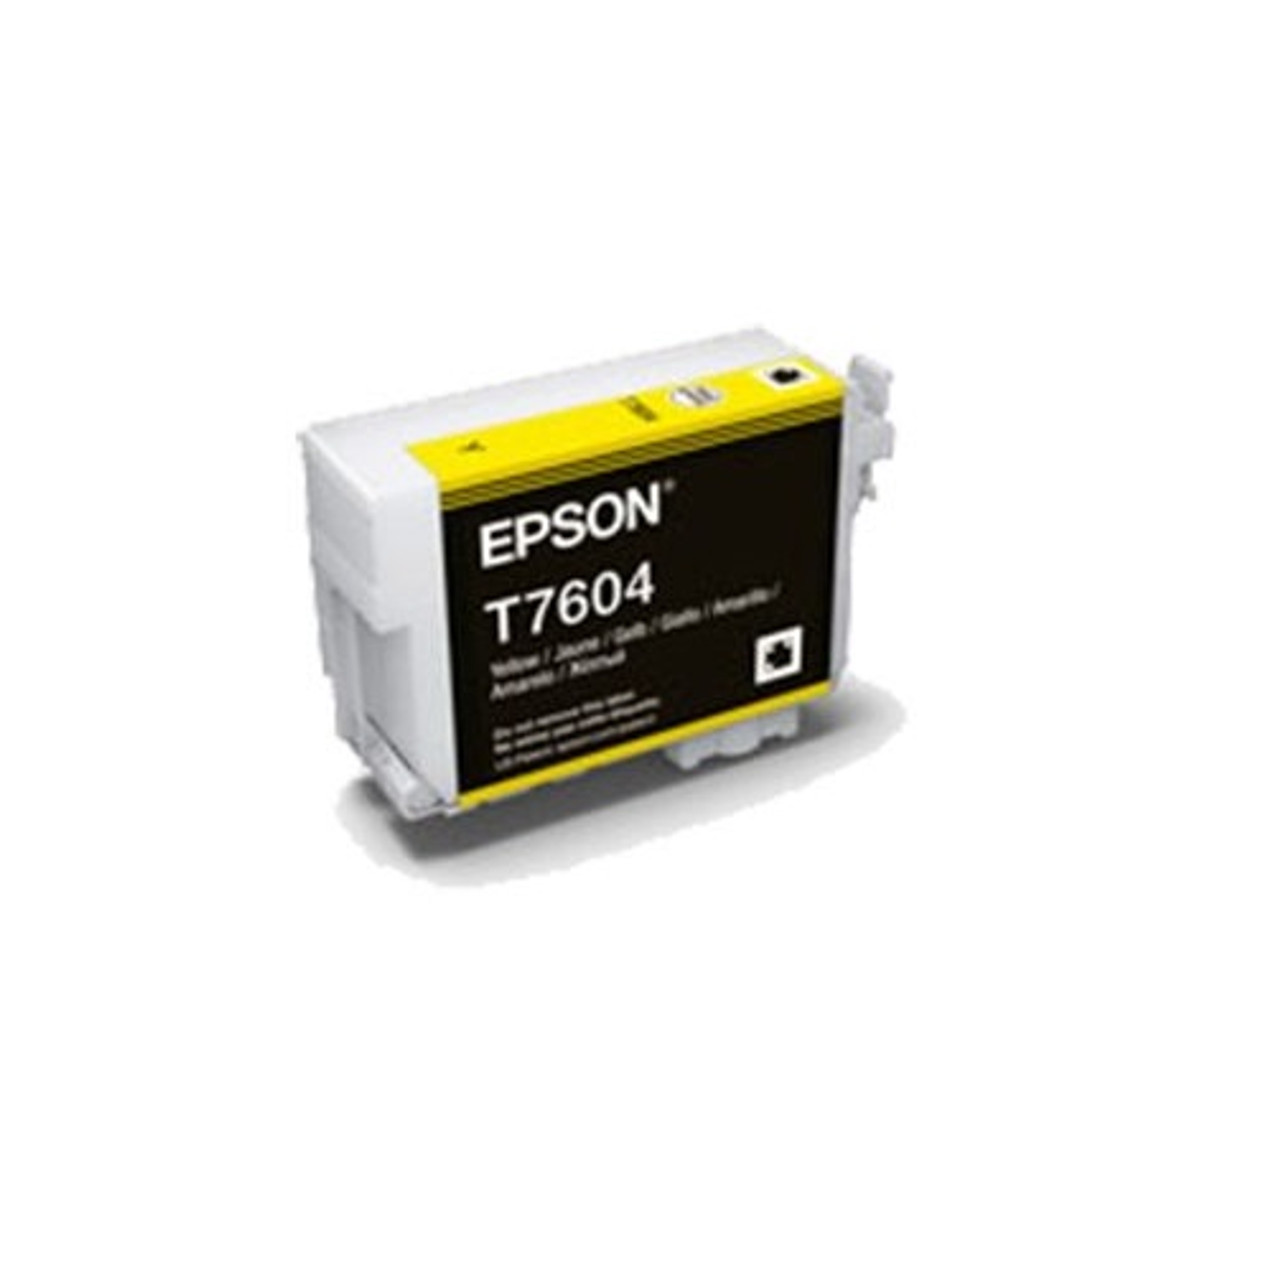 EPSON C13T760400 T7604 INK CARTRIDGE ULTRACHROME HD YELLOW